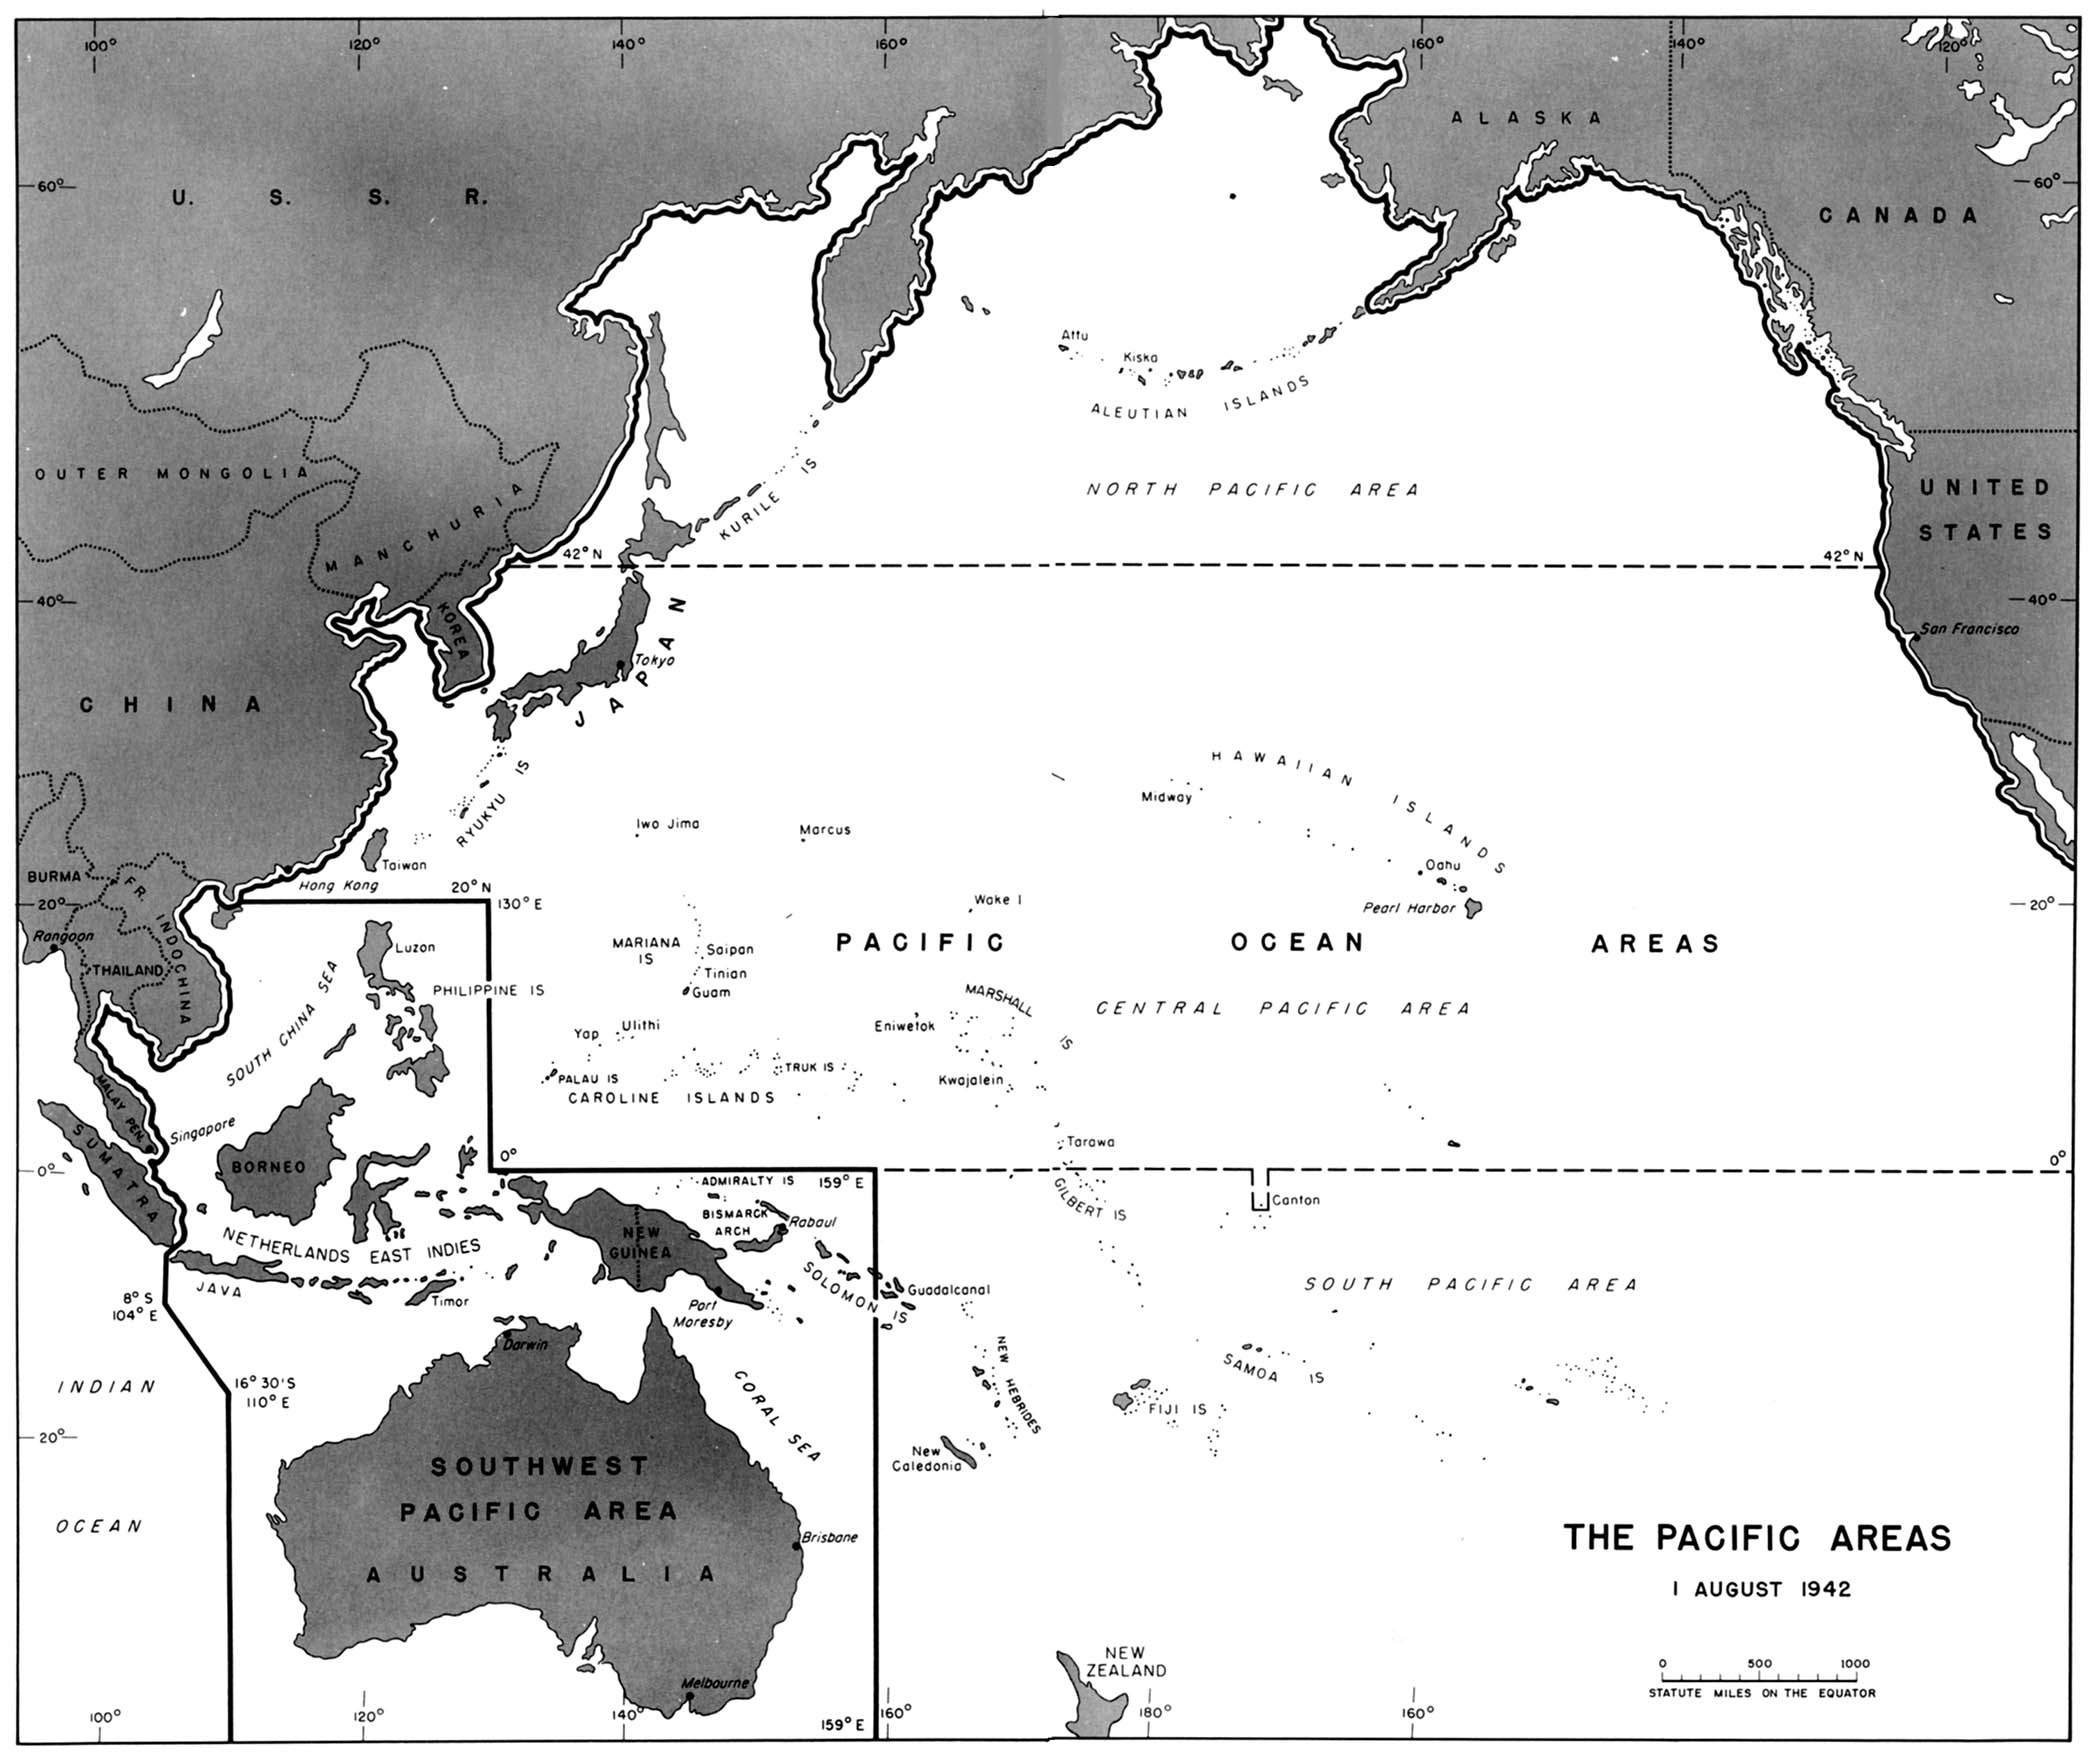 map 42 the pacific areas 1 august 1942